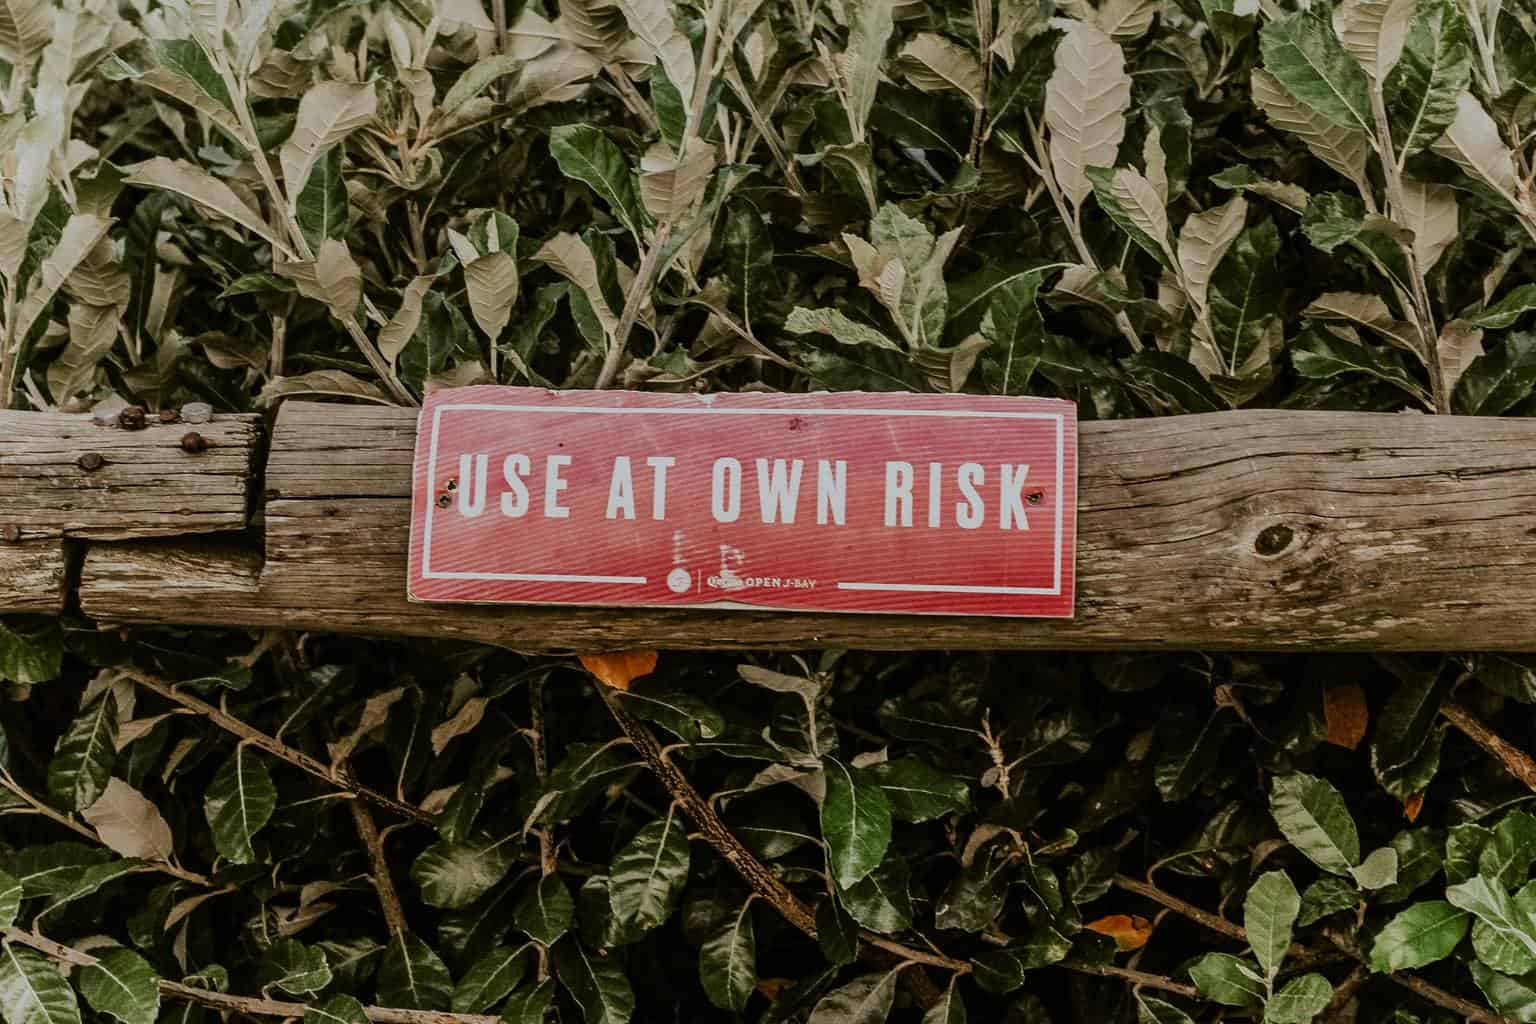 Use at own risk sign